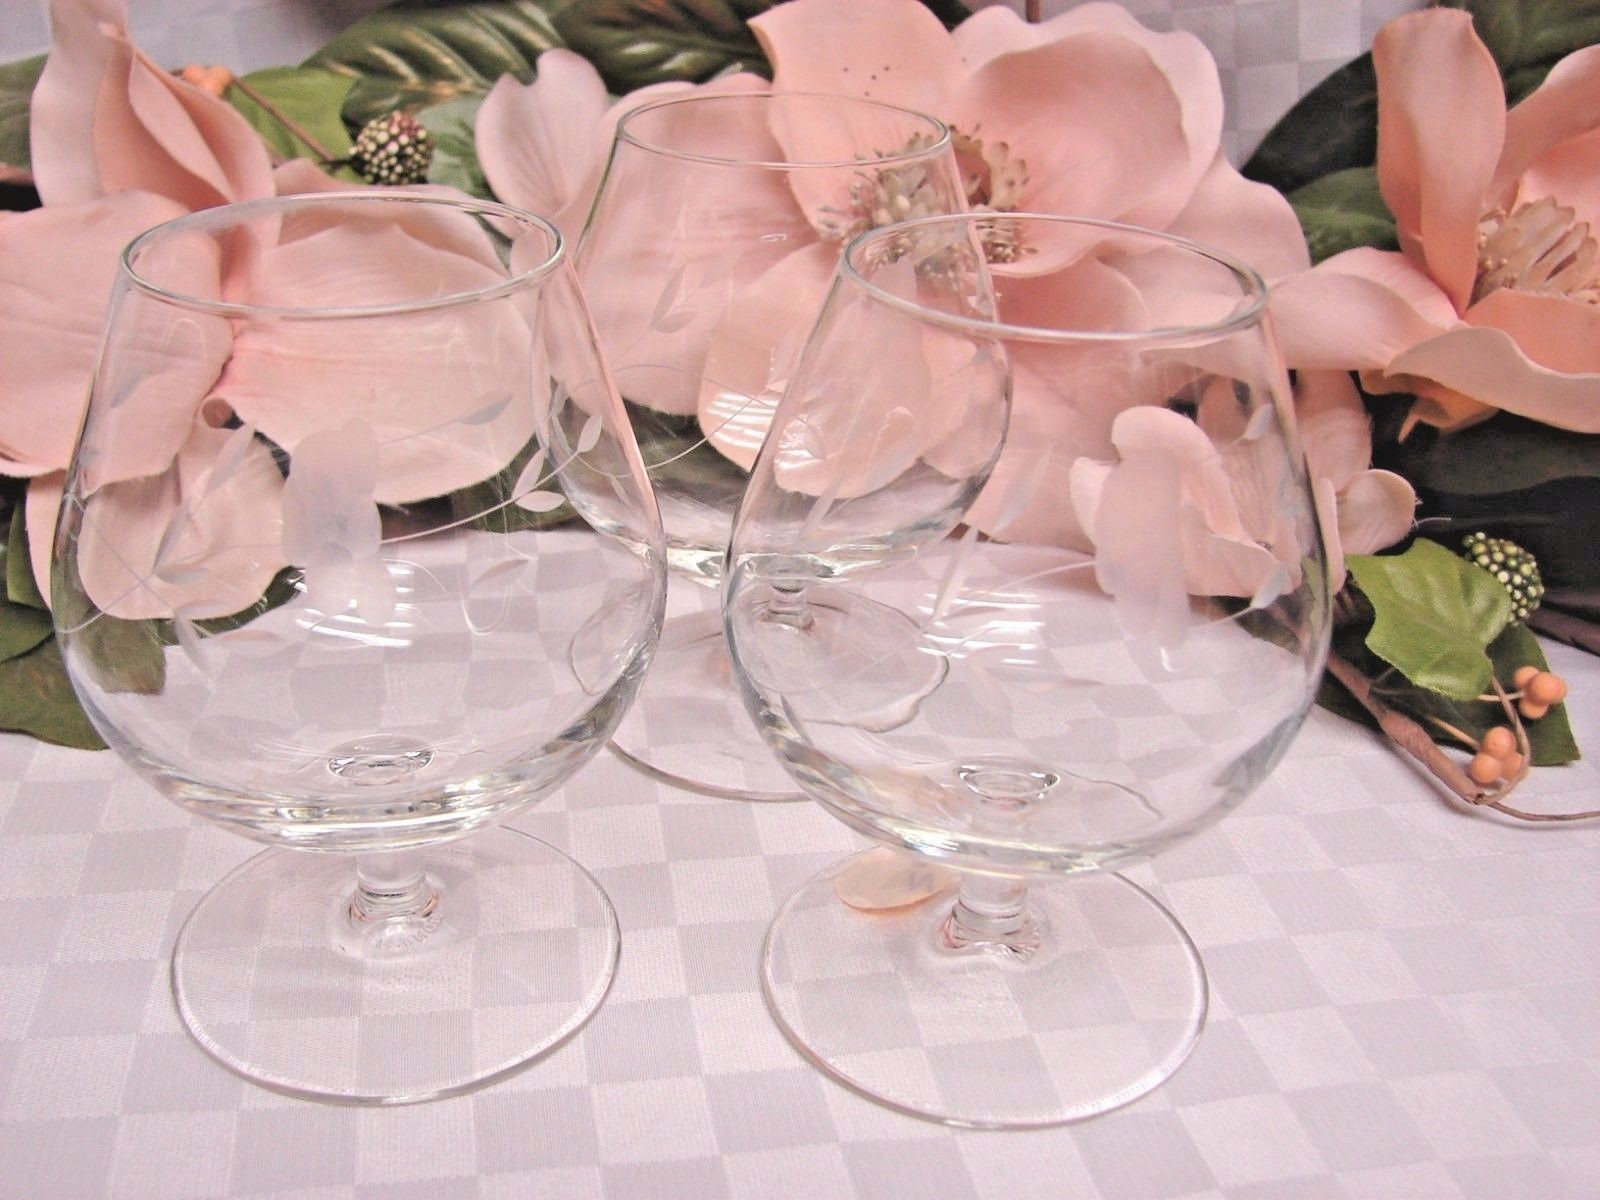 princess house lead crystal vase of princess house heritage crystal floral design clear 3 footed brandy intended for princess house heritage crystal floral design clear 3 footed brandy glass royal teacup body porcelian replacement doulton dinnerware cupcake